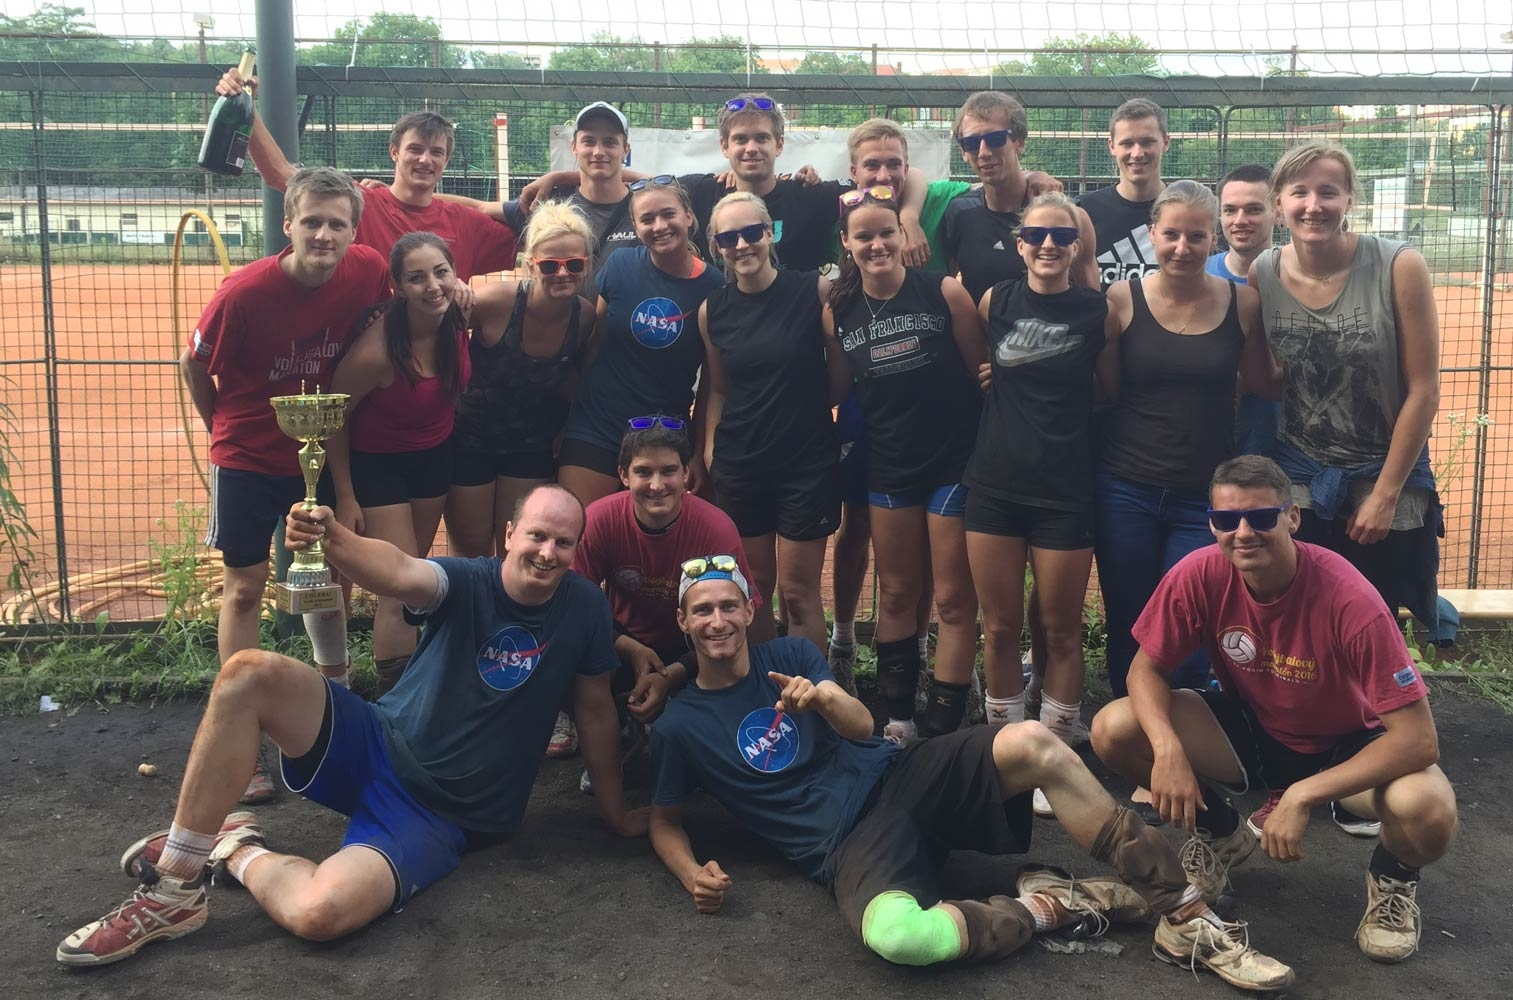 KPMG Fit Cup – Meteor 2016